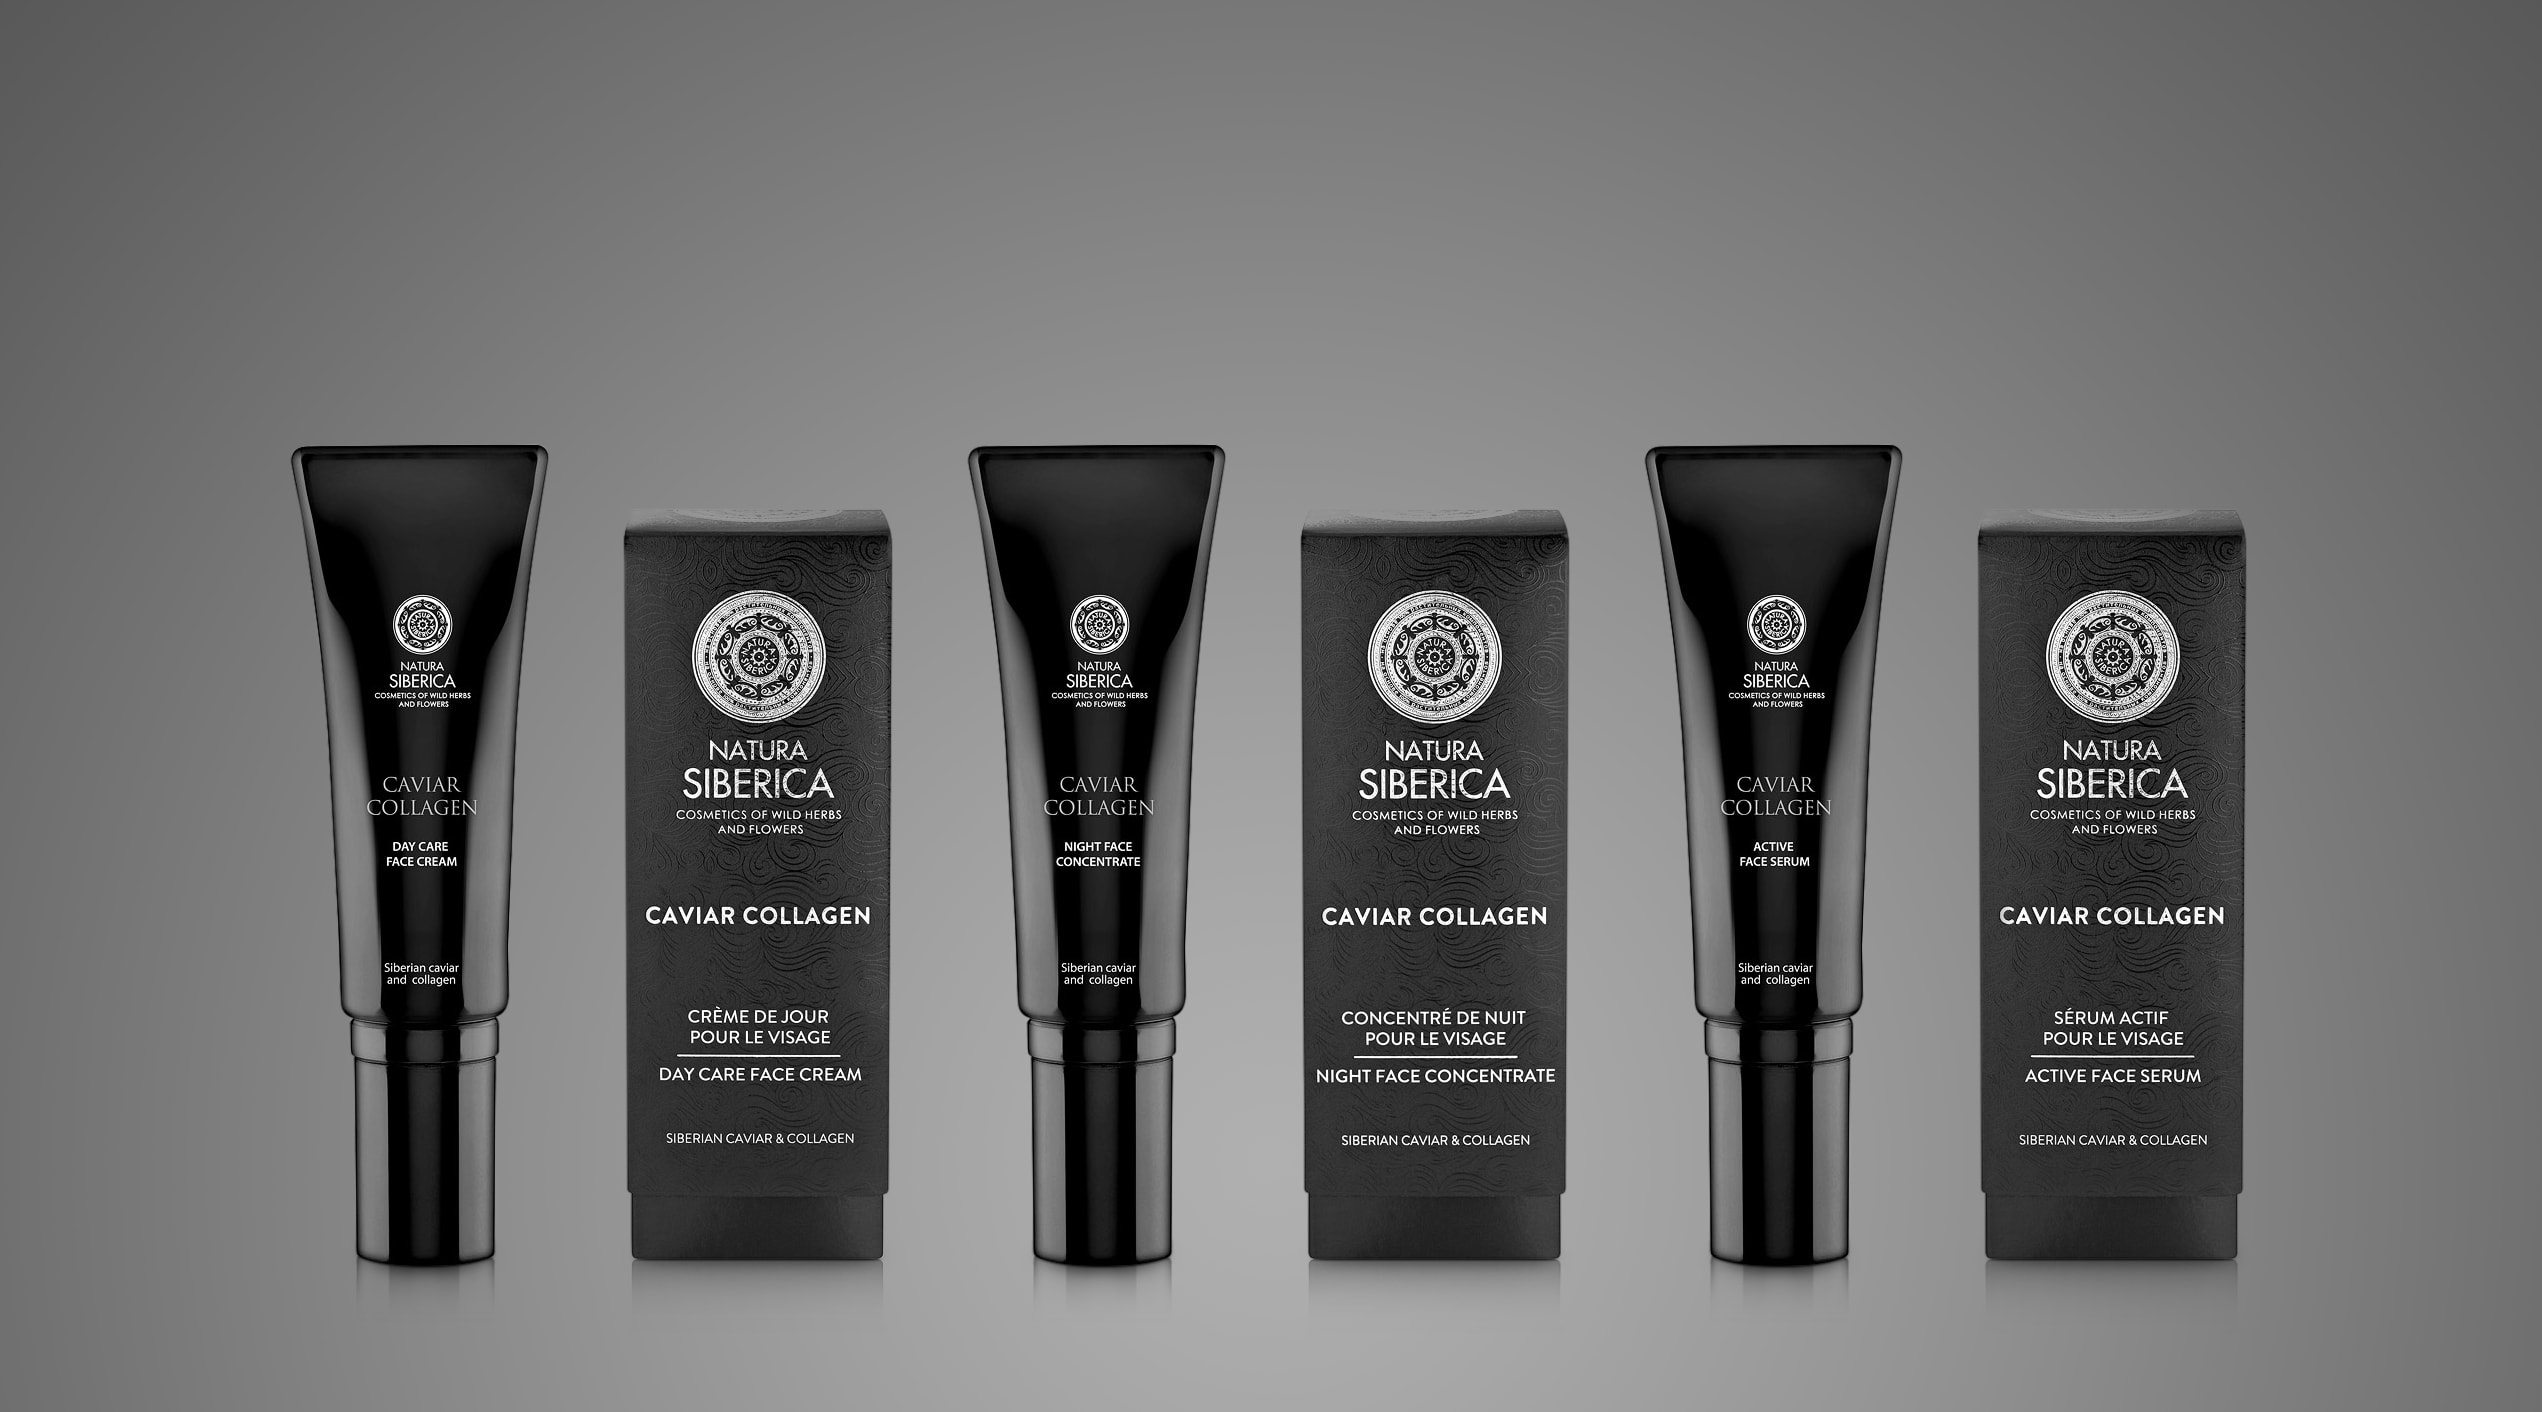 Caviar Collagen